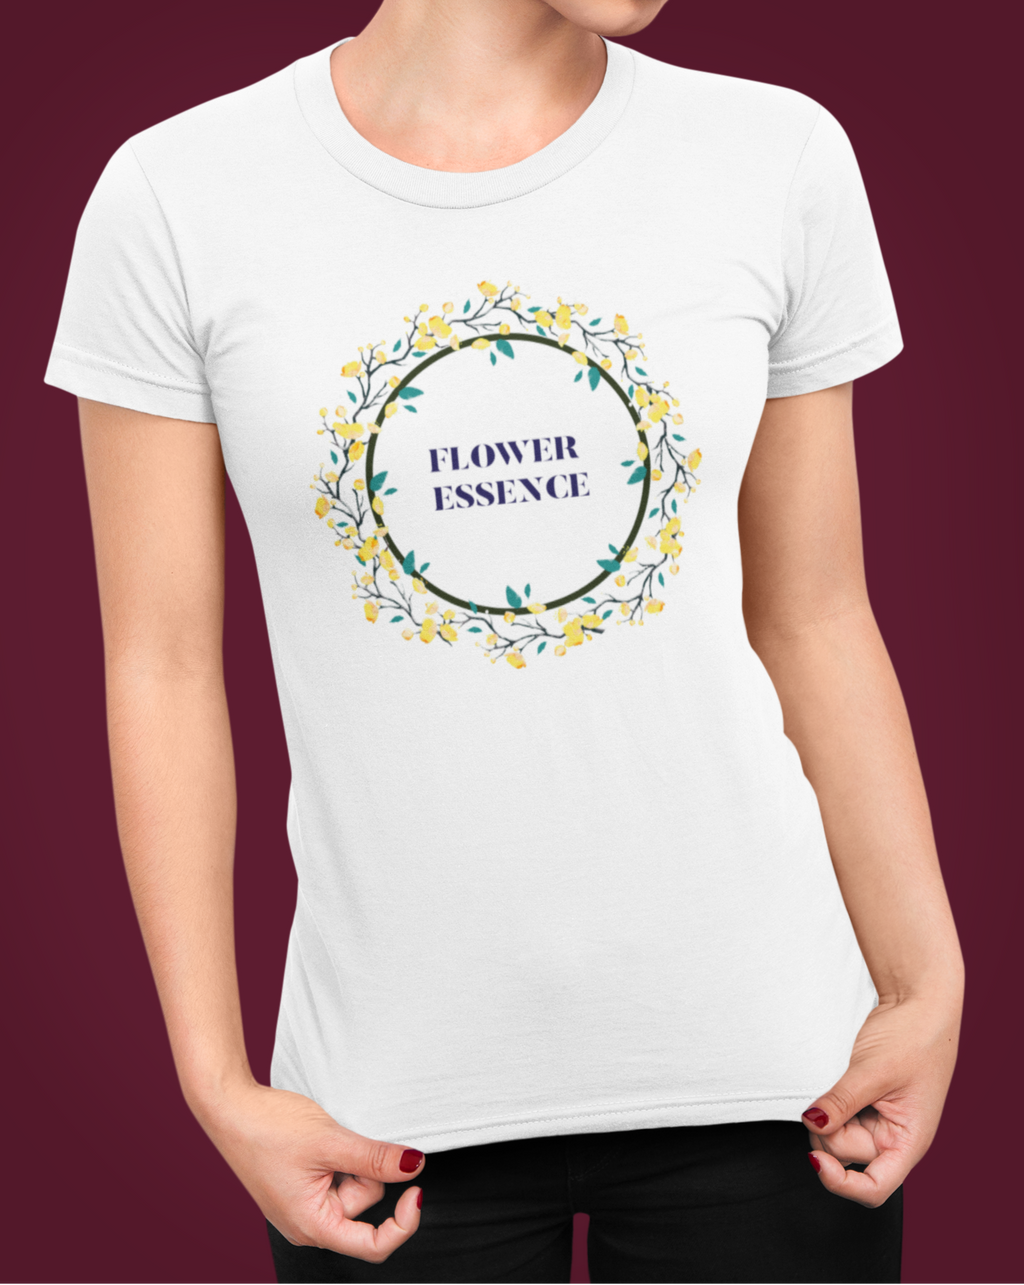 Flower Essence Circle T-shirt With Flowers - Echo Essential Wear - Essential Oil T-Shirt Fashion